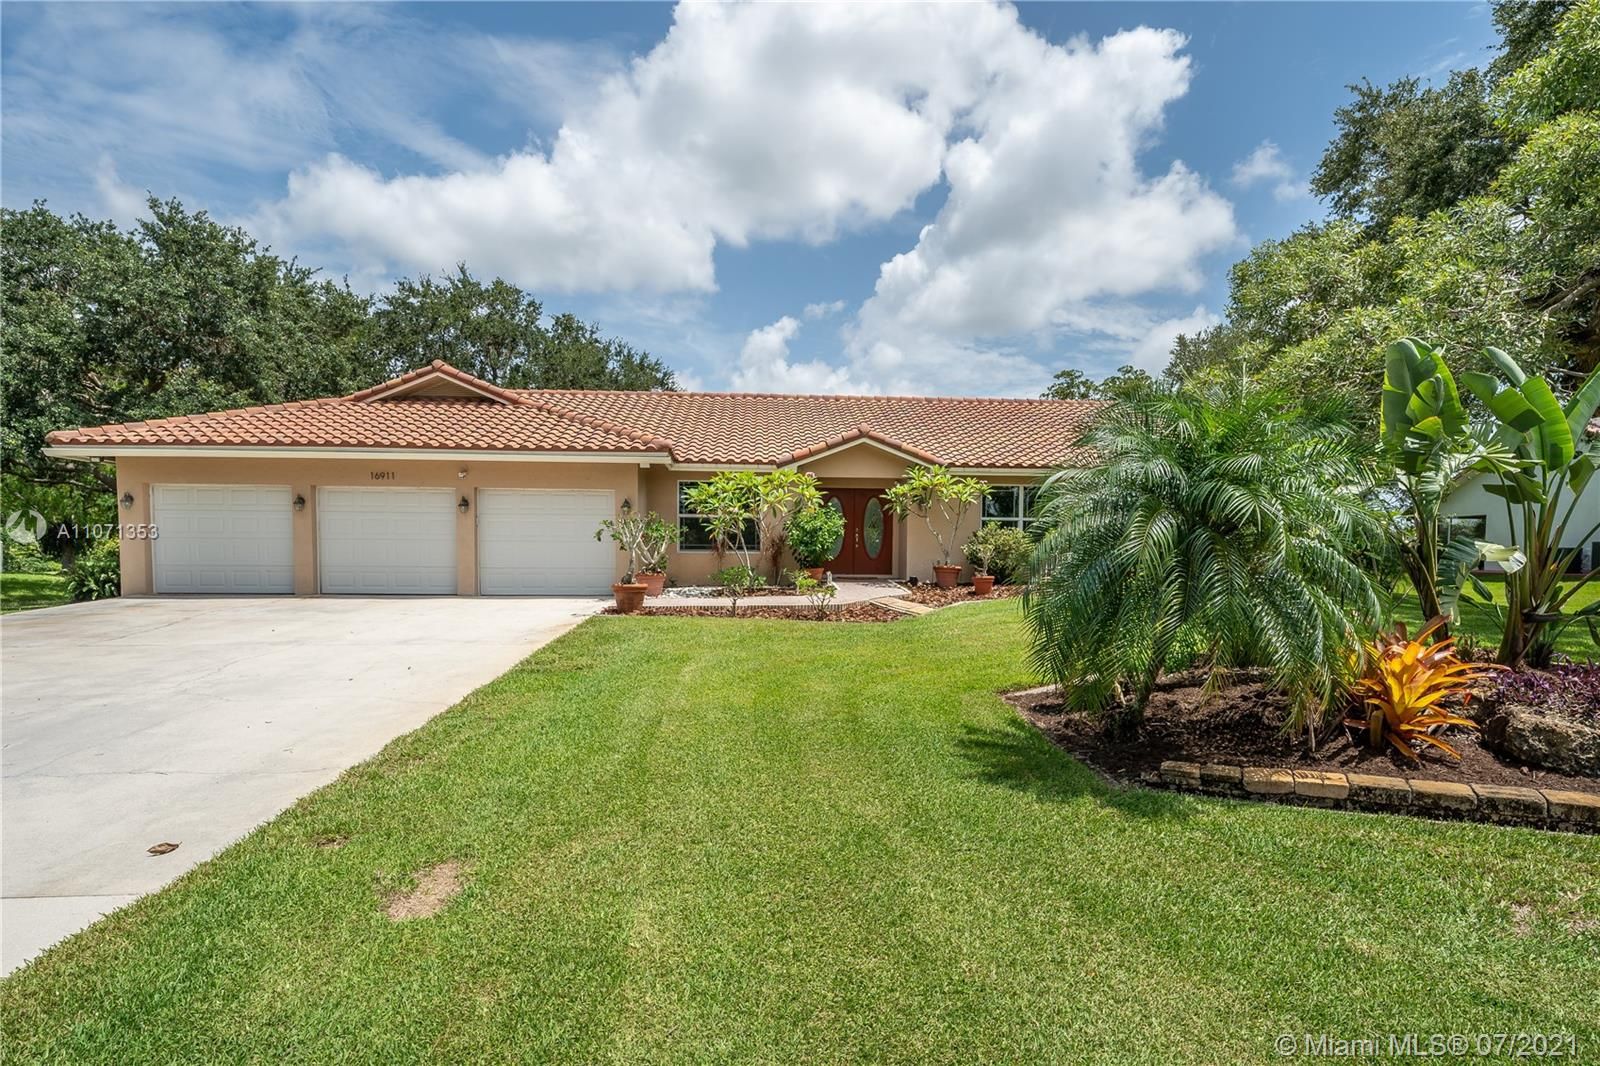 16911 SW 66th St, Southwest Ranches, Florida 33331